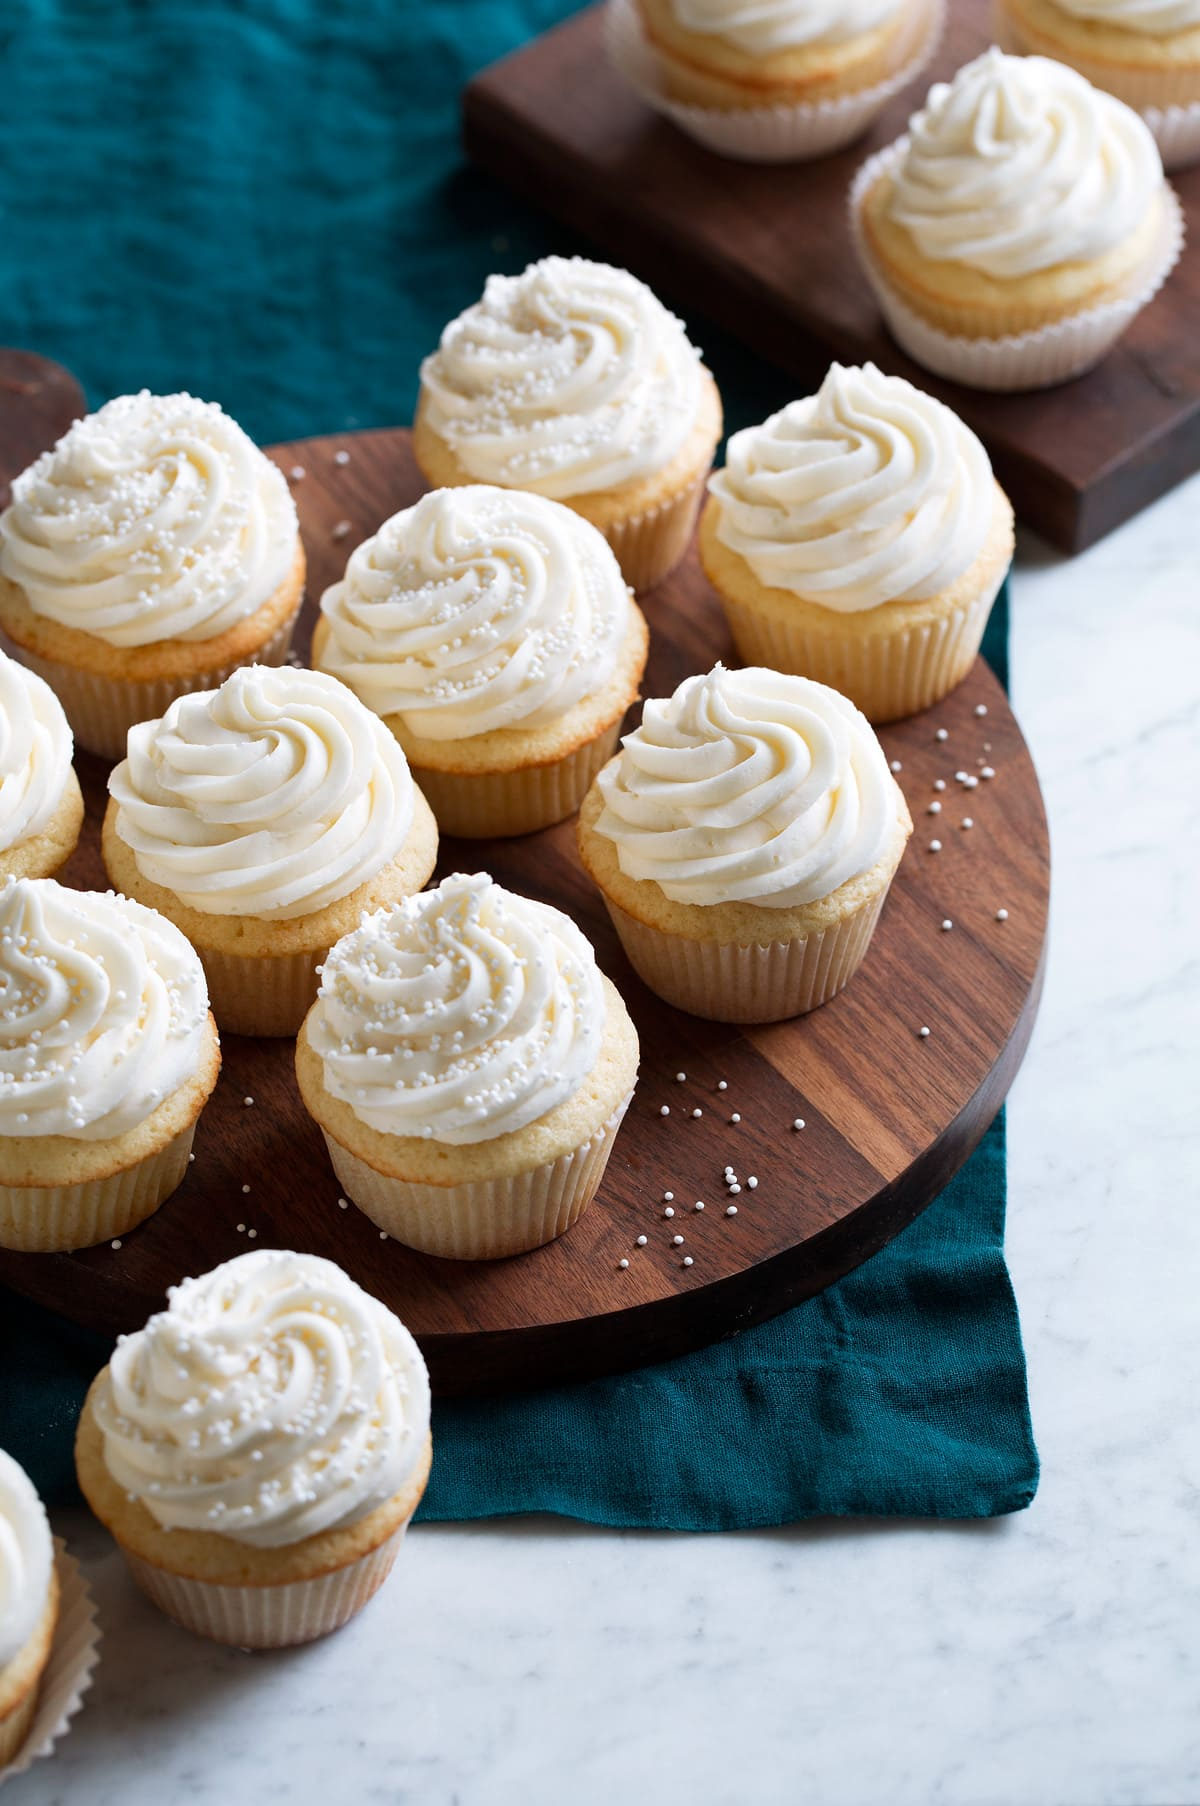 A batch of homemade vanilla cupcakes shown on a wooden serving platter over a blue cloth.